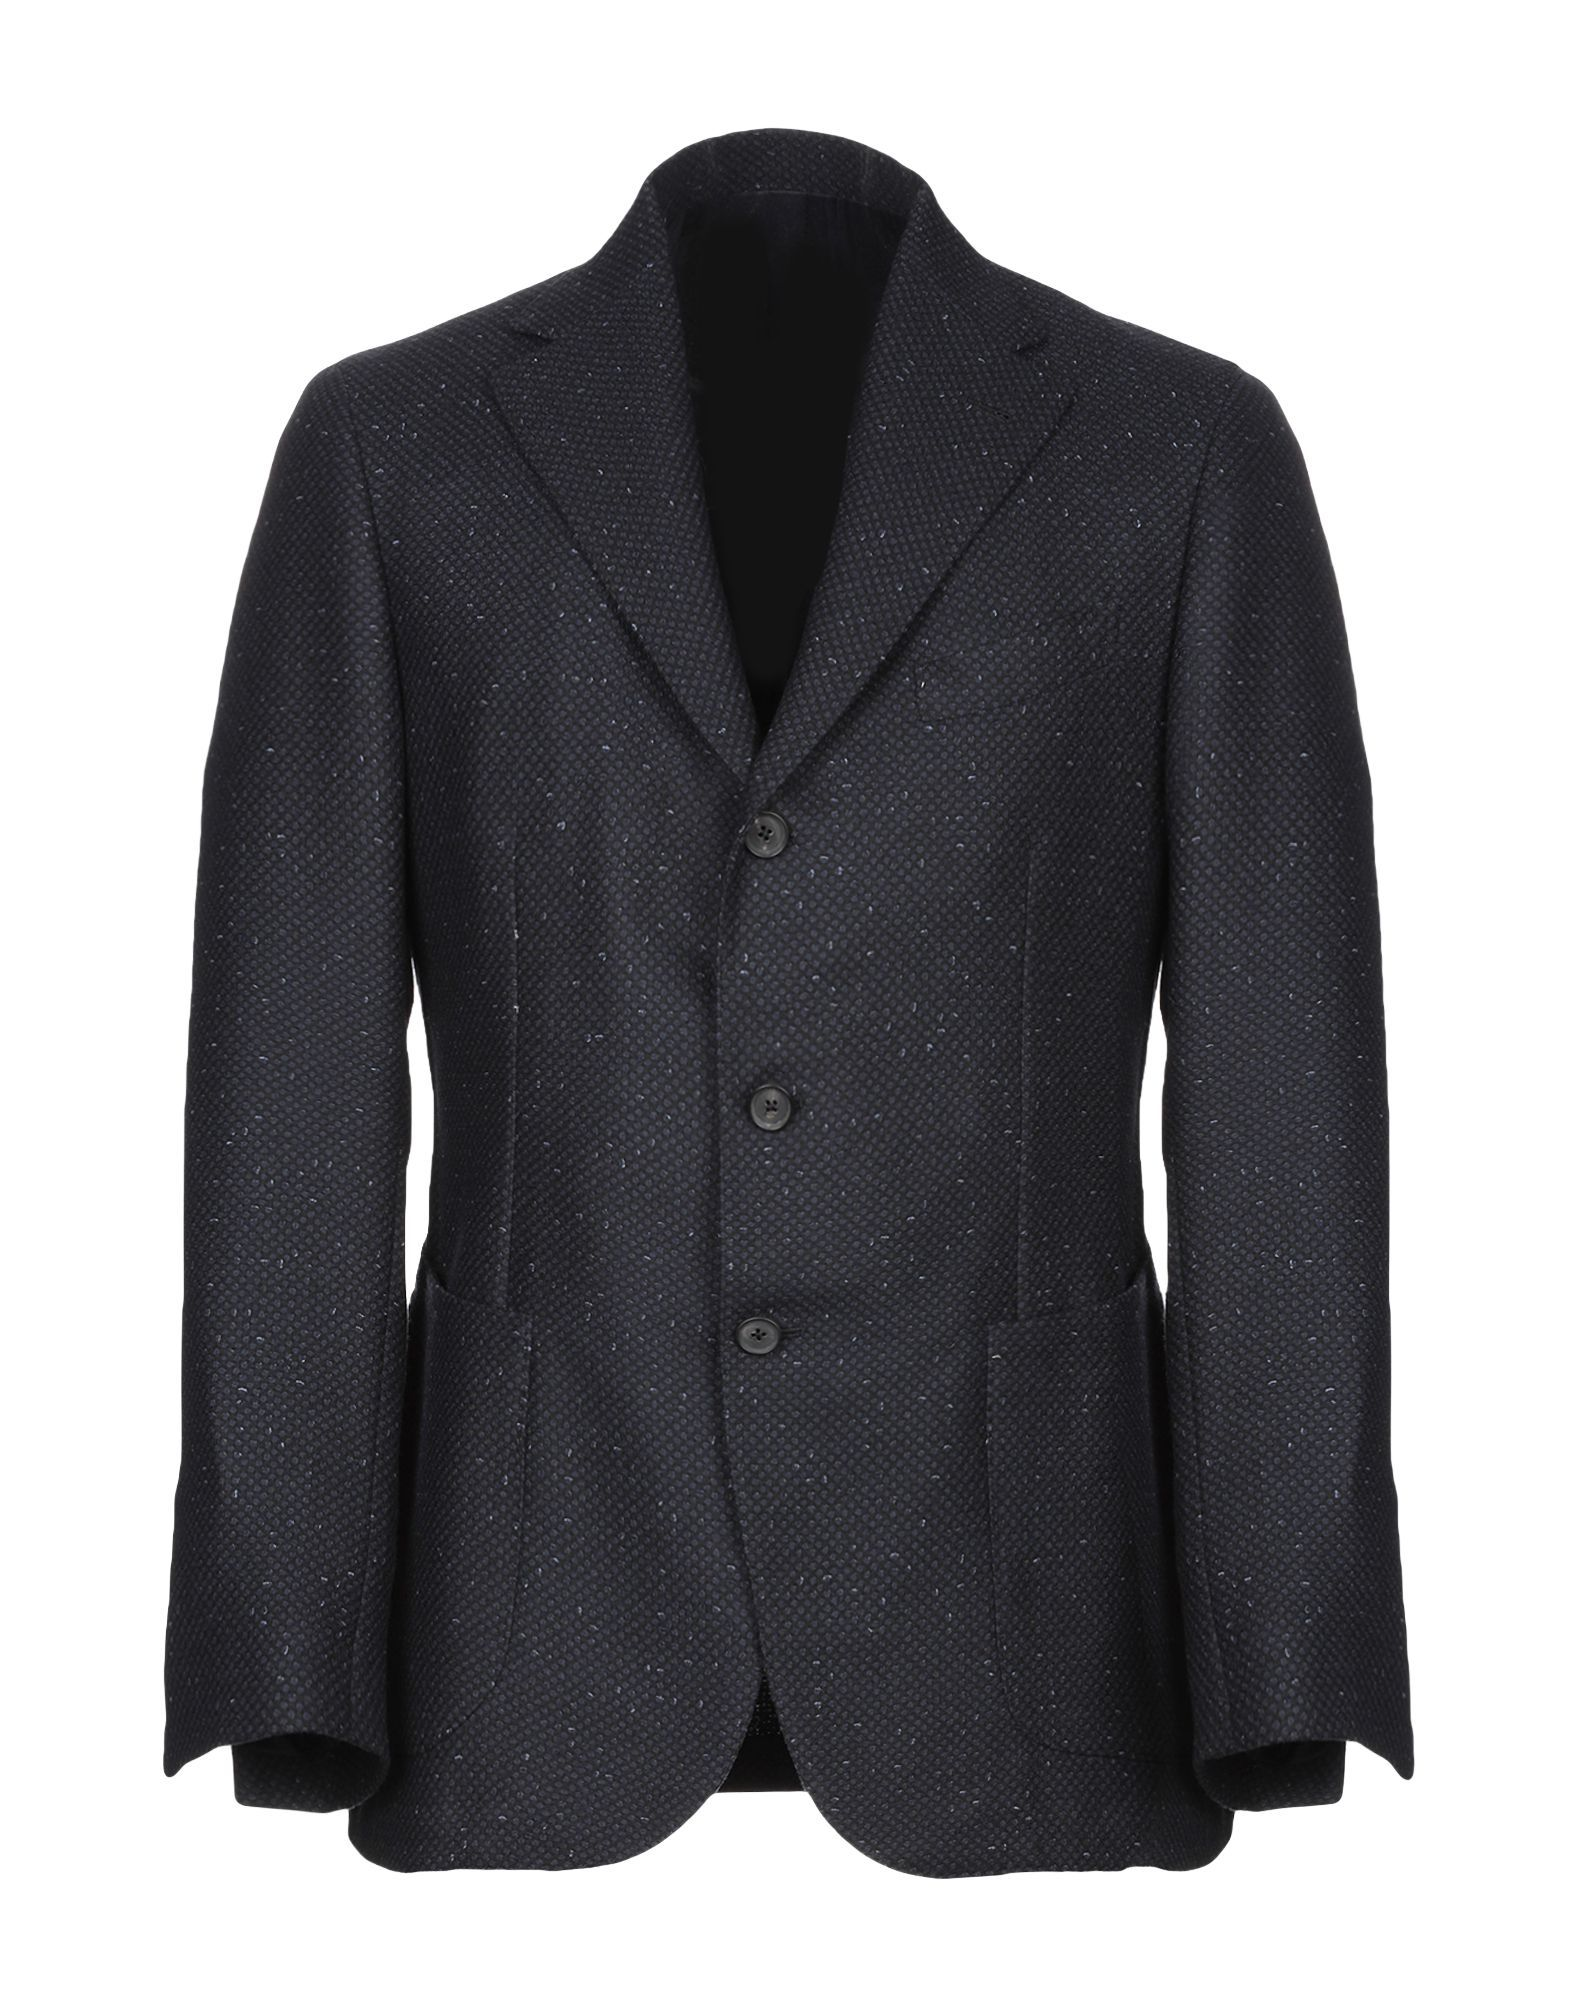 Luigi Borrelli Napoli Dark Blue Virgin Wool Single Breasted Blazer